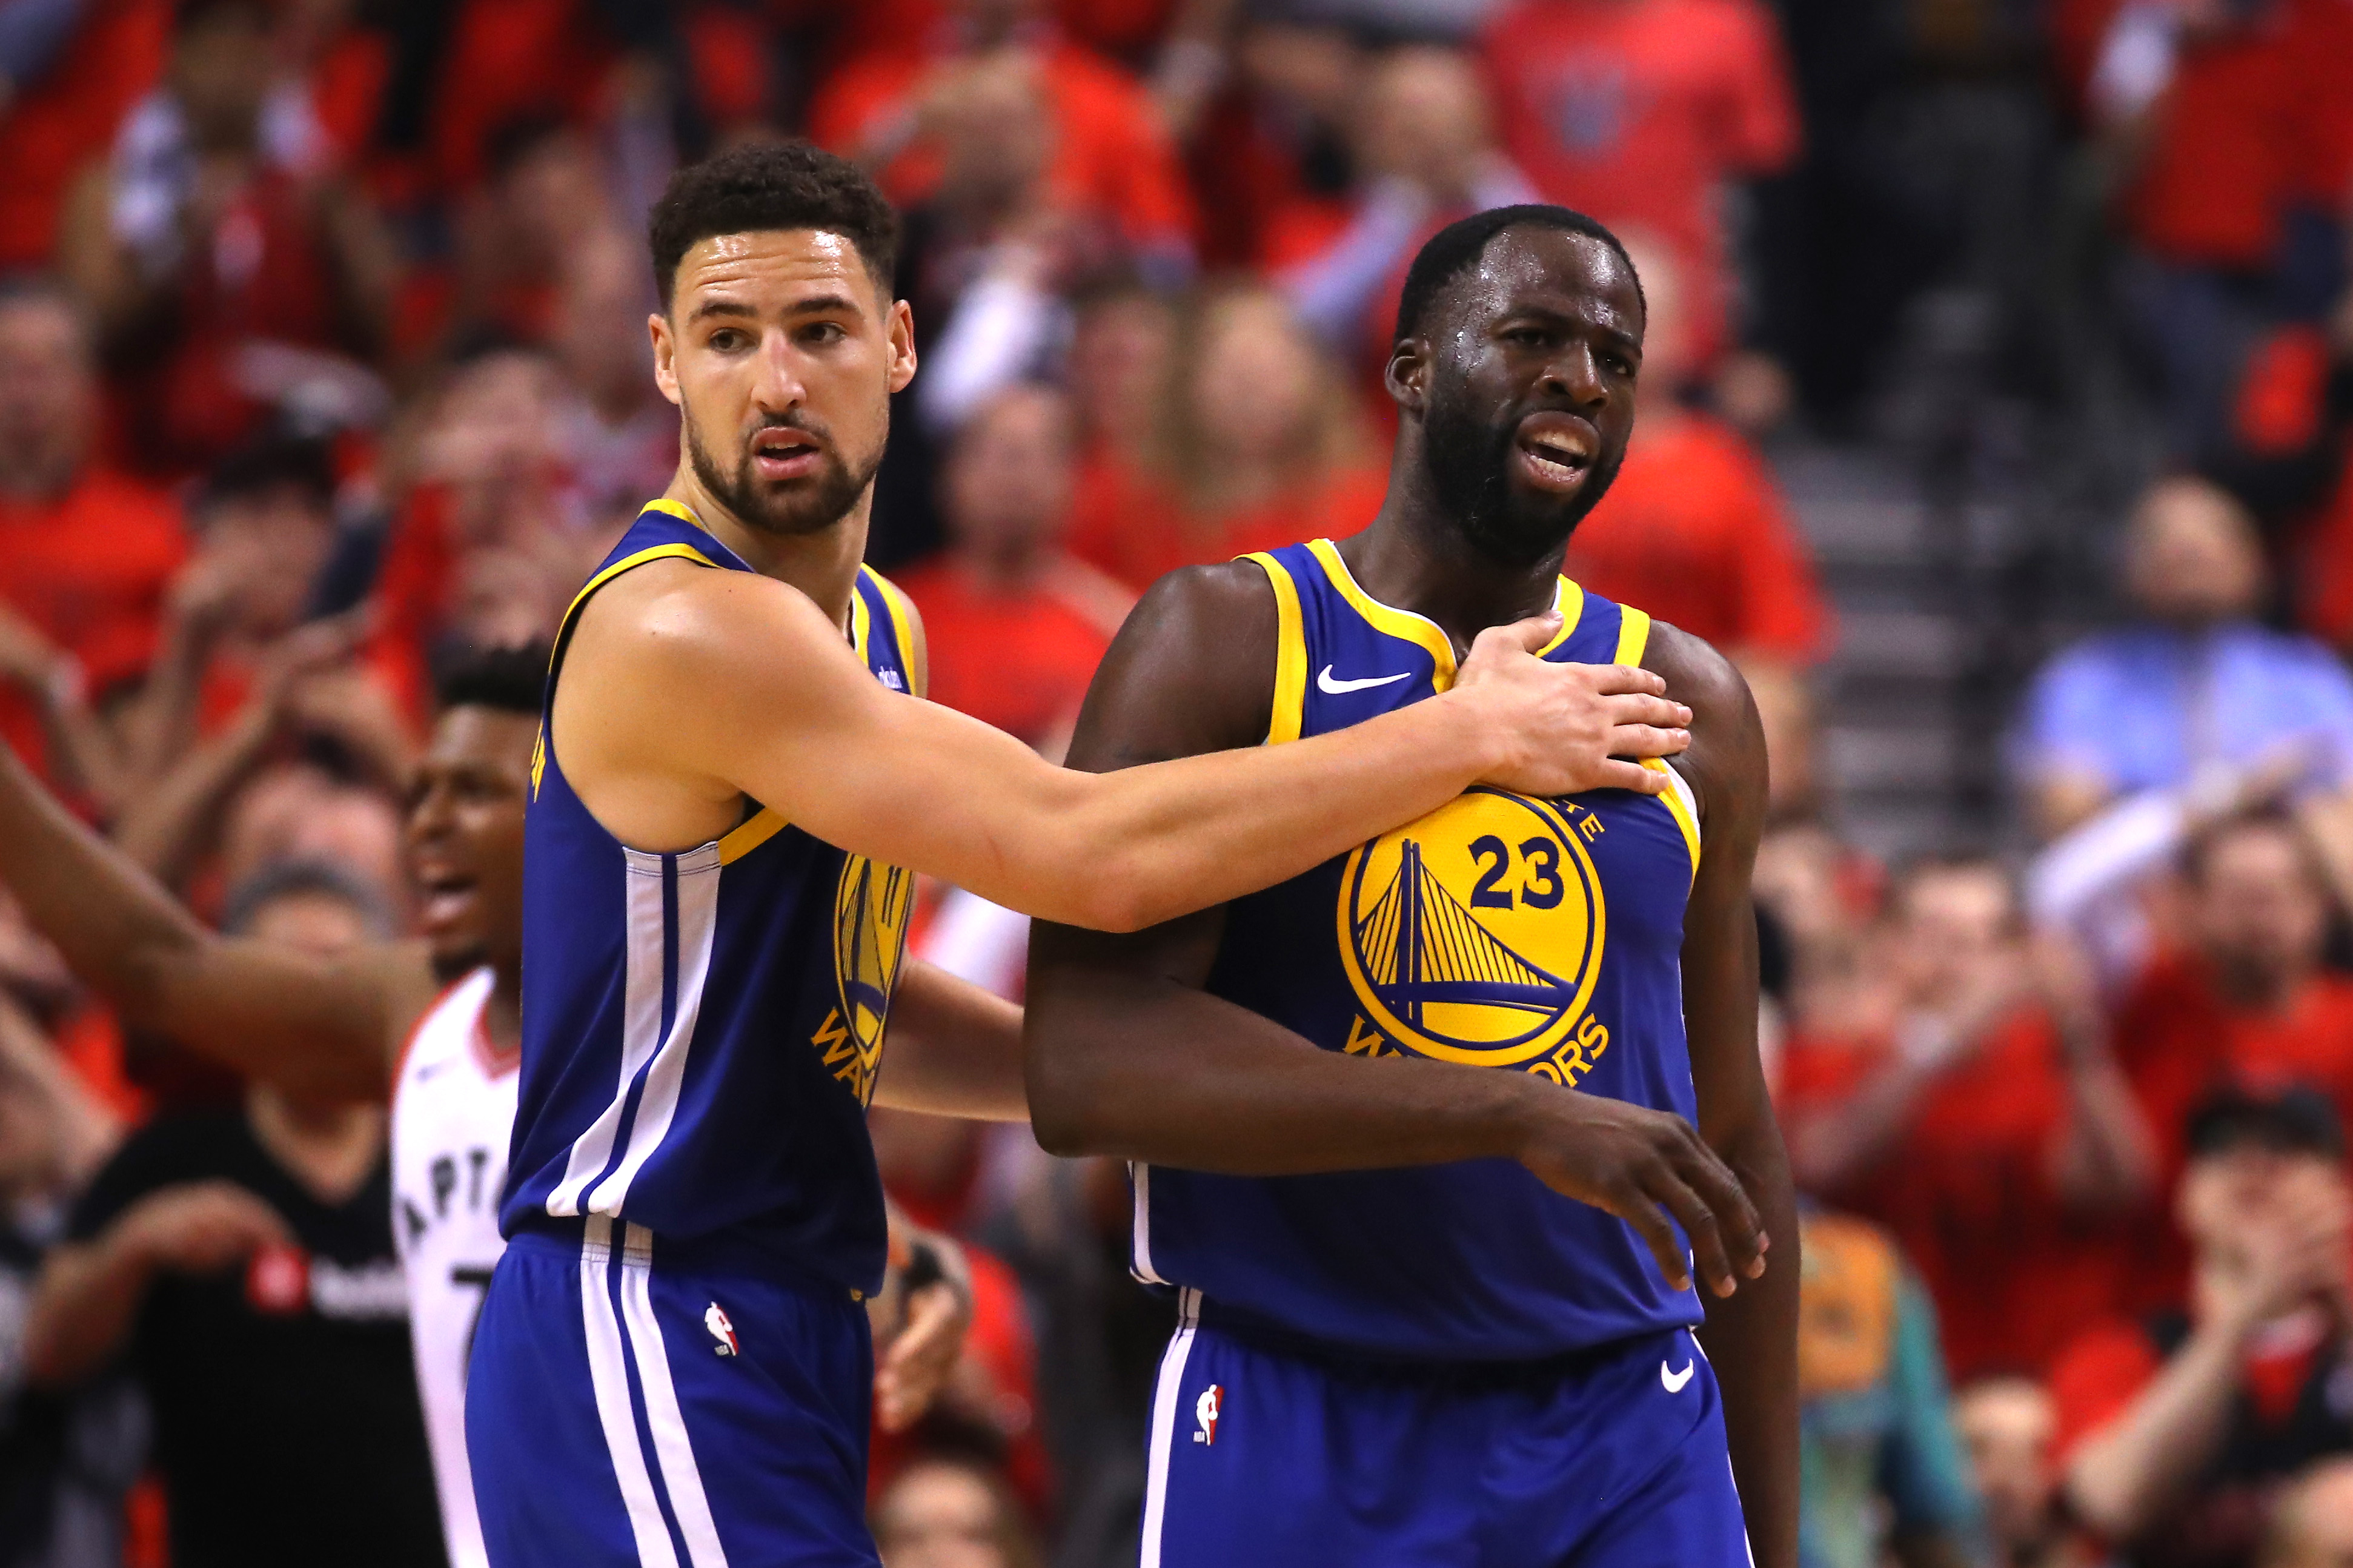 Klay Thompson And Draymond Green Mercilessly Mock 'Tough Guy' Rodney McGruder For Trying To Fight Warriors Player After Game - BroBible